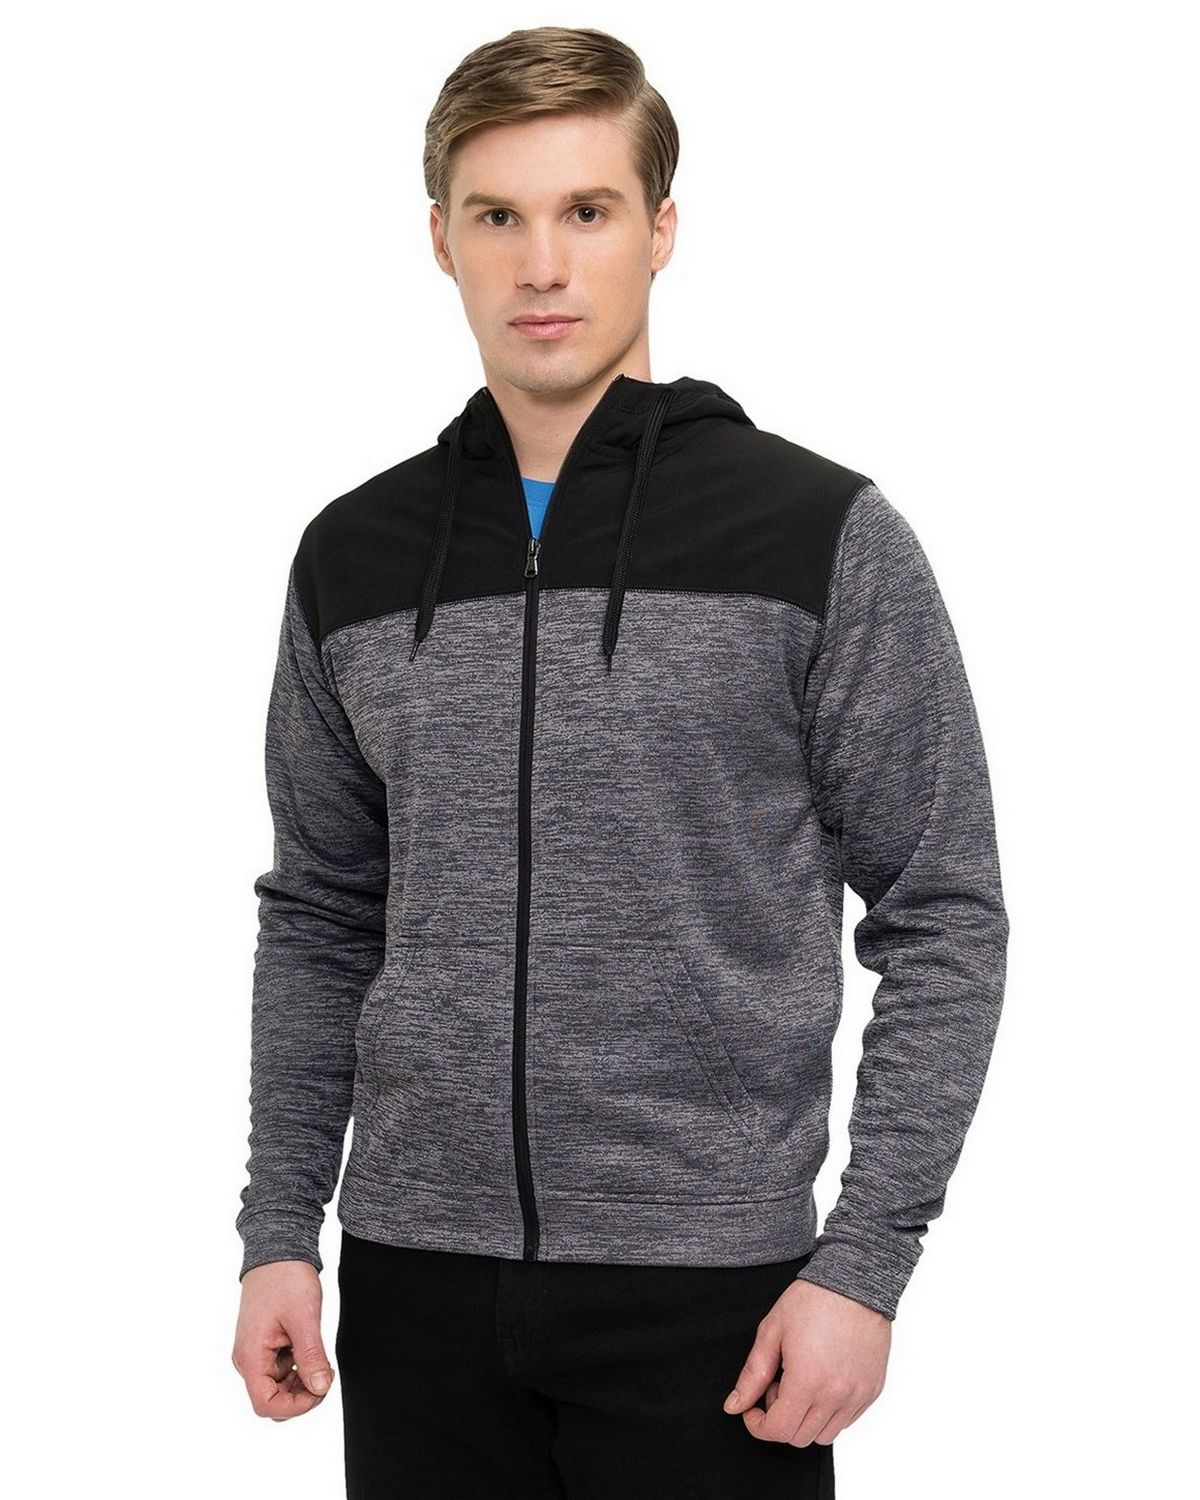 Tri-Mountain Performance F7455 Mens Full Zip Jacket - Charcoal/Black - XL F7455